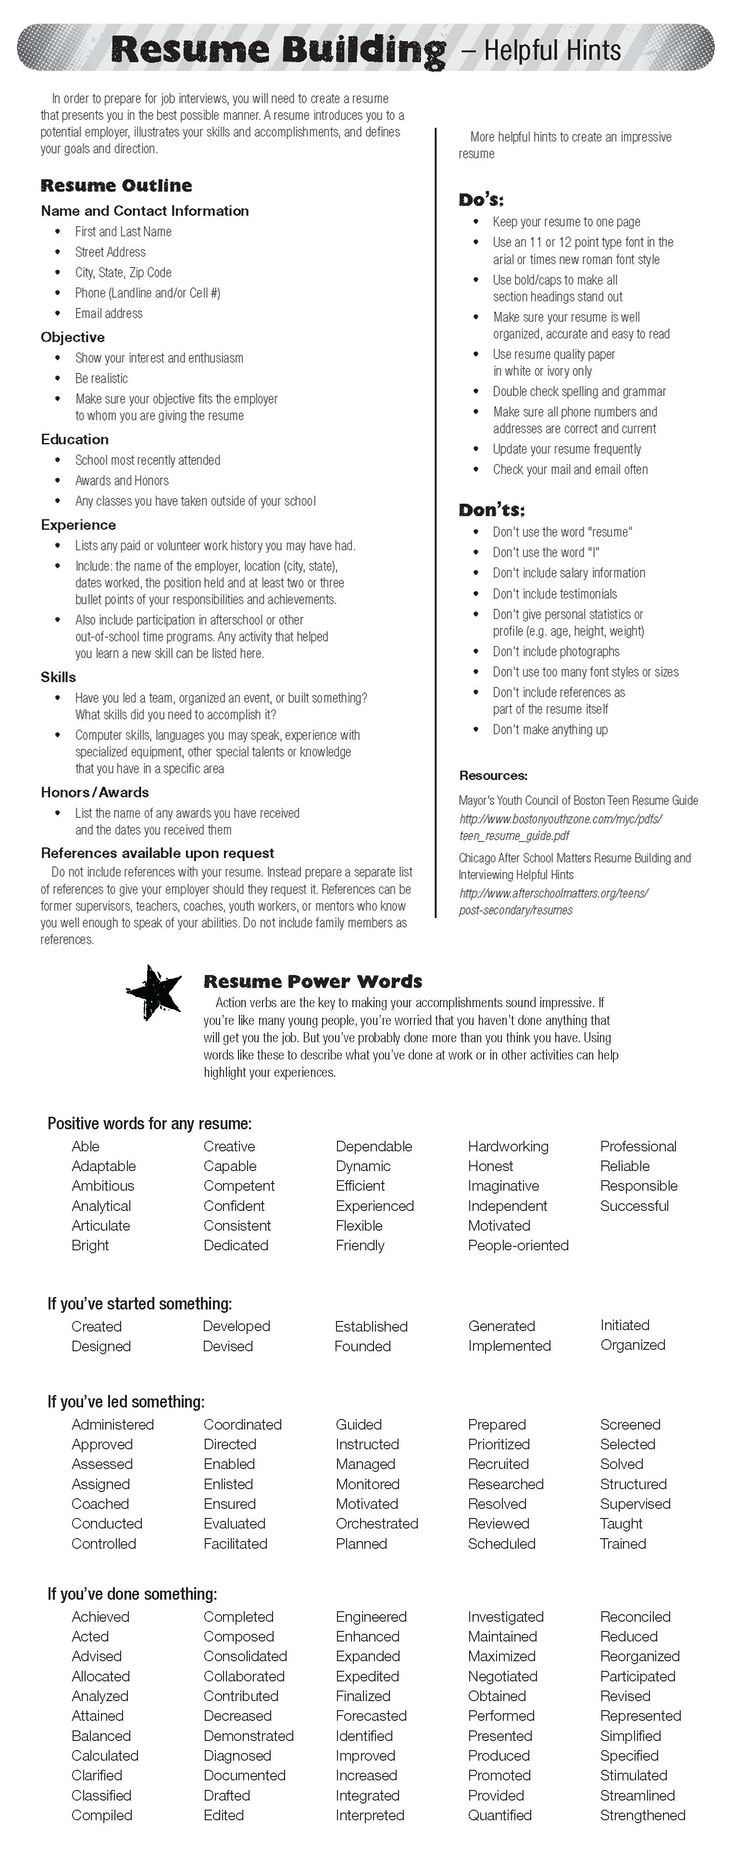 Opposenewapstandardsus  Wonderful  Ideas About Resume On Pinterest  Cv Format Resume Cv And  With Handsome  Ideas About Resume On Pinterest  Cv Format Resume Cv And Resume Templates With Delectable Free Resume Program Also Resume Writers Chicago In Addition Resume For College Students Still In School And Resume Design Template As Well As Resume Skills Customer Service Additionally Forklift Resume Sample From Pinterestcom With Opposenewapstandardsus  Handsome  Ideas About Resume On Pinterest  Cv Format Resume Cv And  With Delectable  Ideas About Resume On Pinterest  Cv Format Resume Cv And Resume Templates And Wonderful Free Resume Program Also Resume Writers Chicago In Addition Resume For College Students Still In School From Pinterestcom